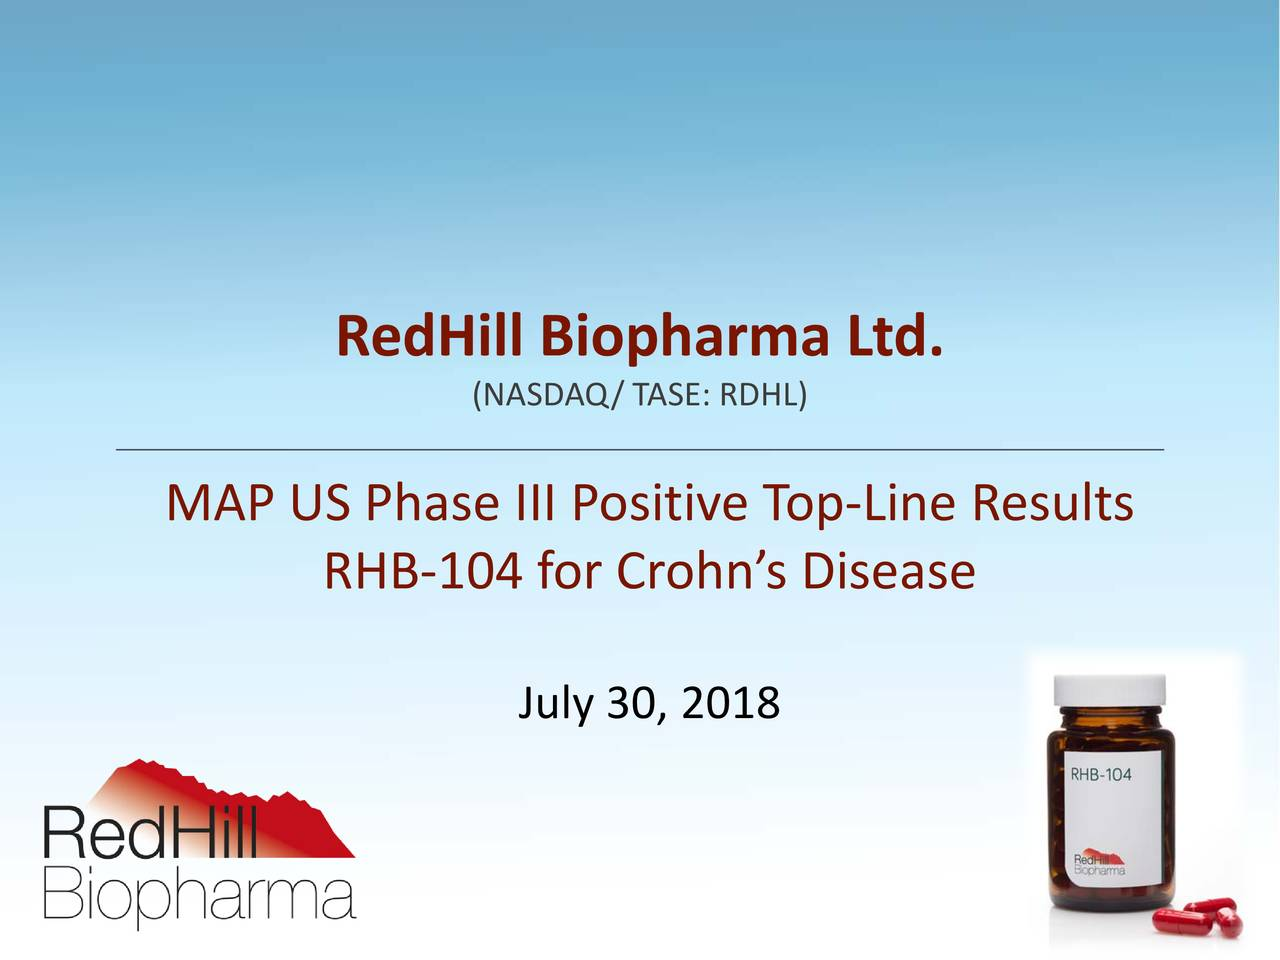 RedHill Biopharma (RDHL) MAP US Phase III Positive Top-Line Results